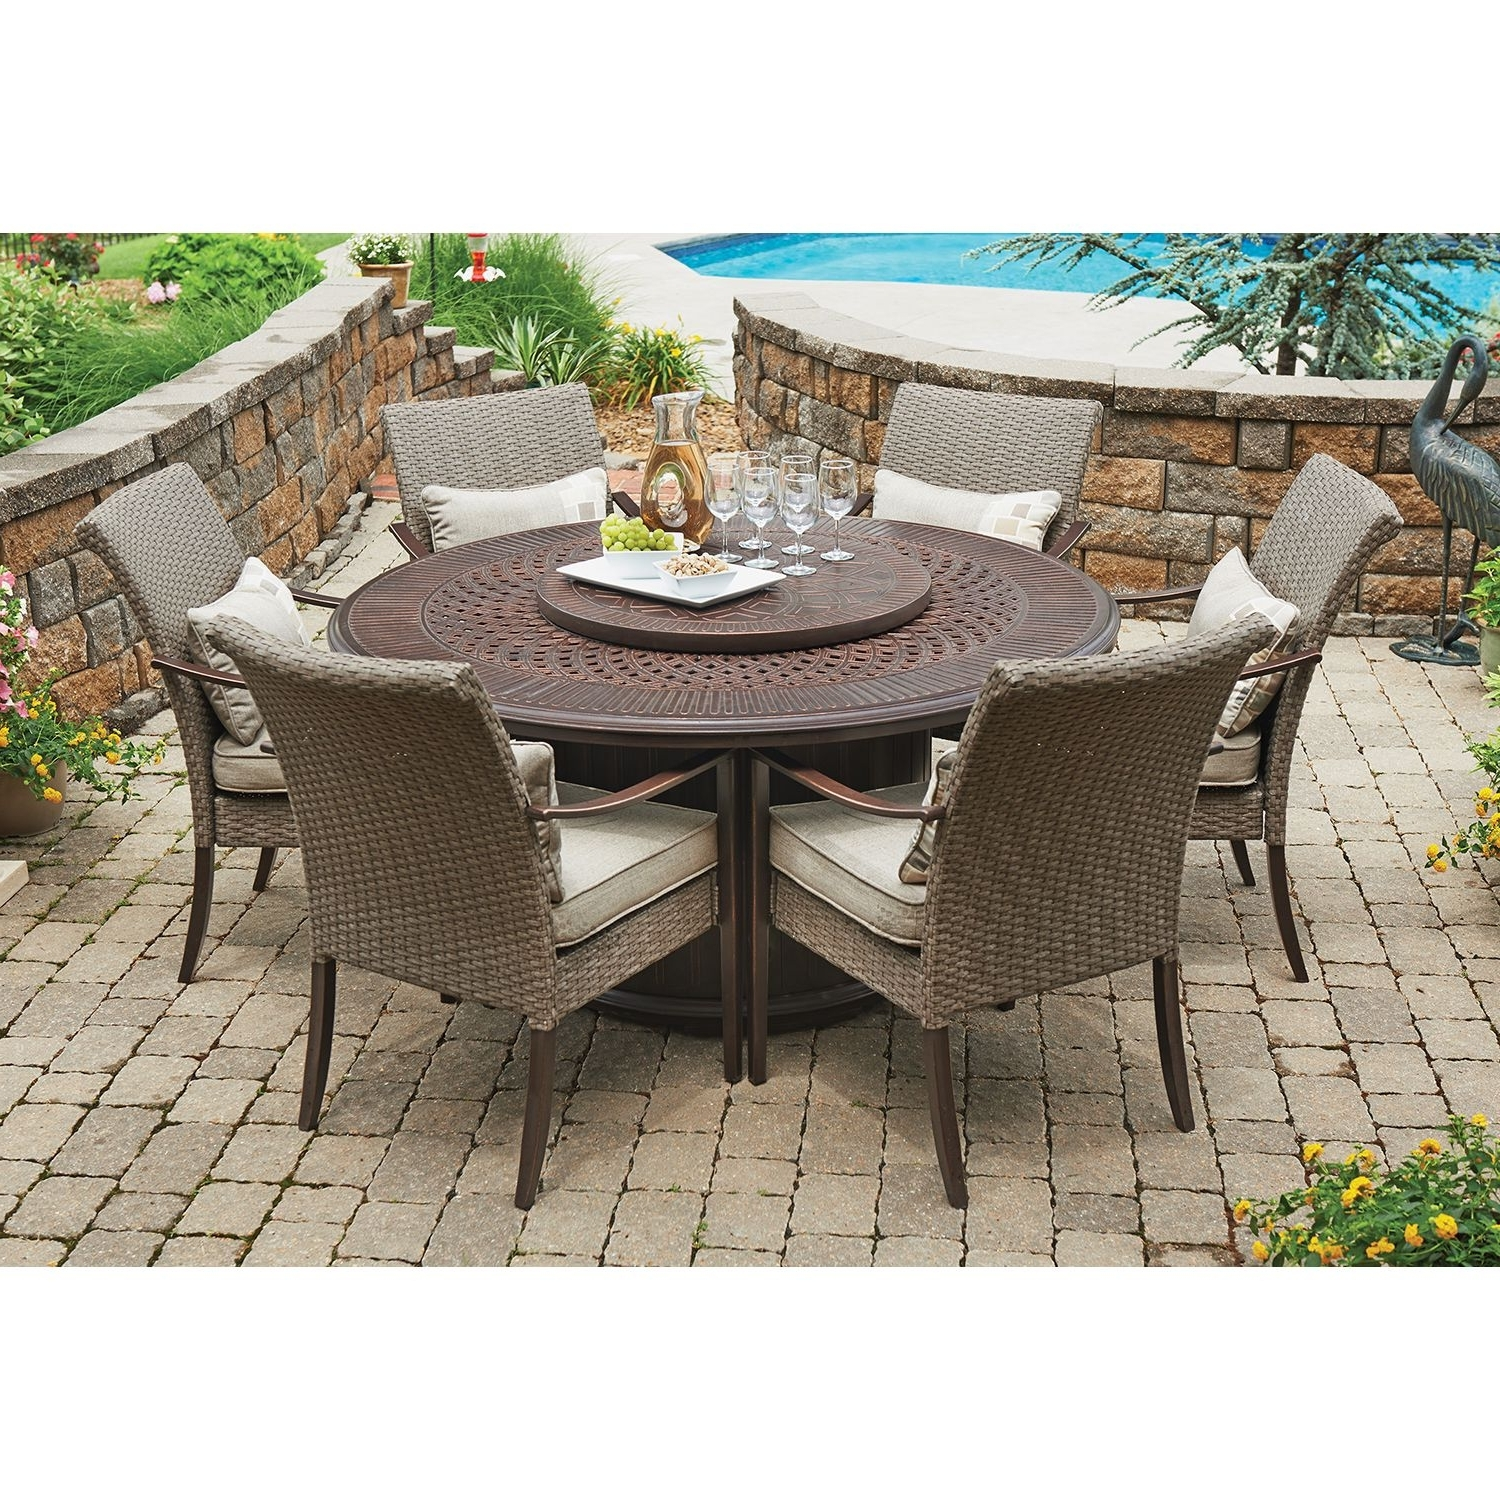 Patio Conversation Sets At Sam's Club For Well Known Craigslist Patio Furniture Home Design Ideas Adidascc Sonic From  (View 9 of 15)